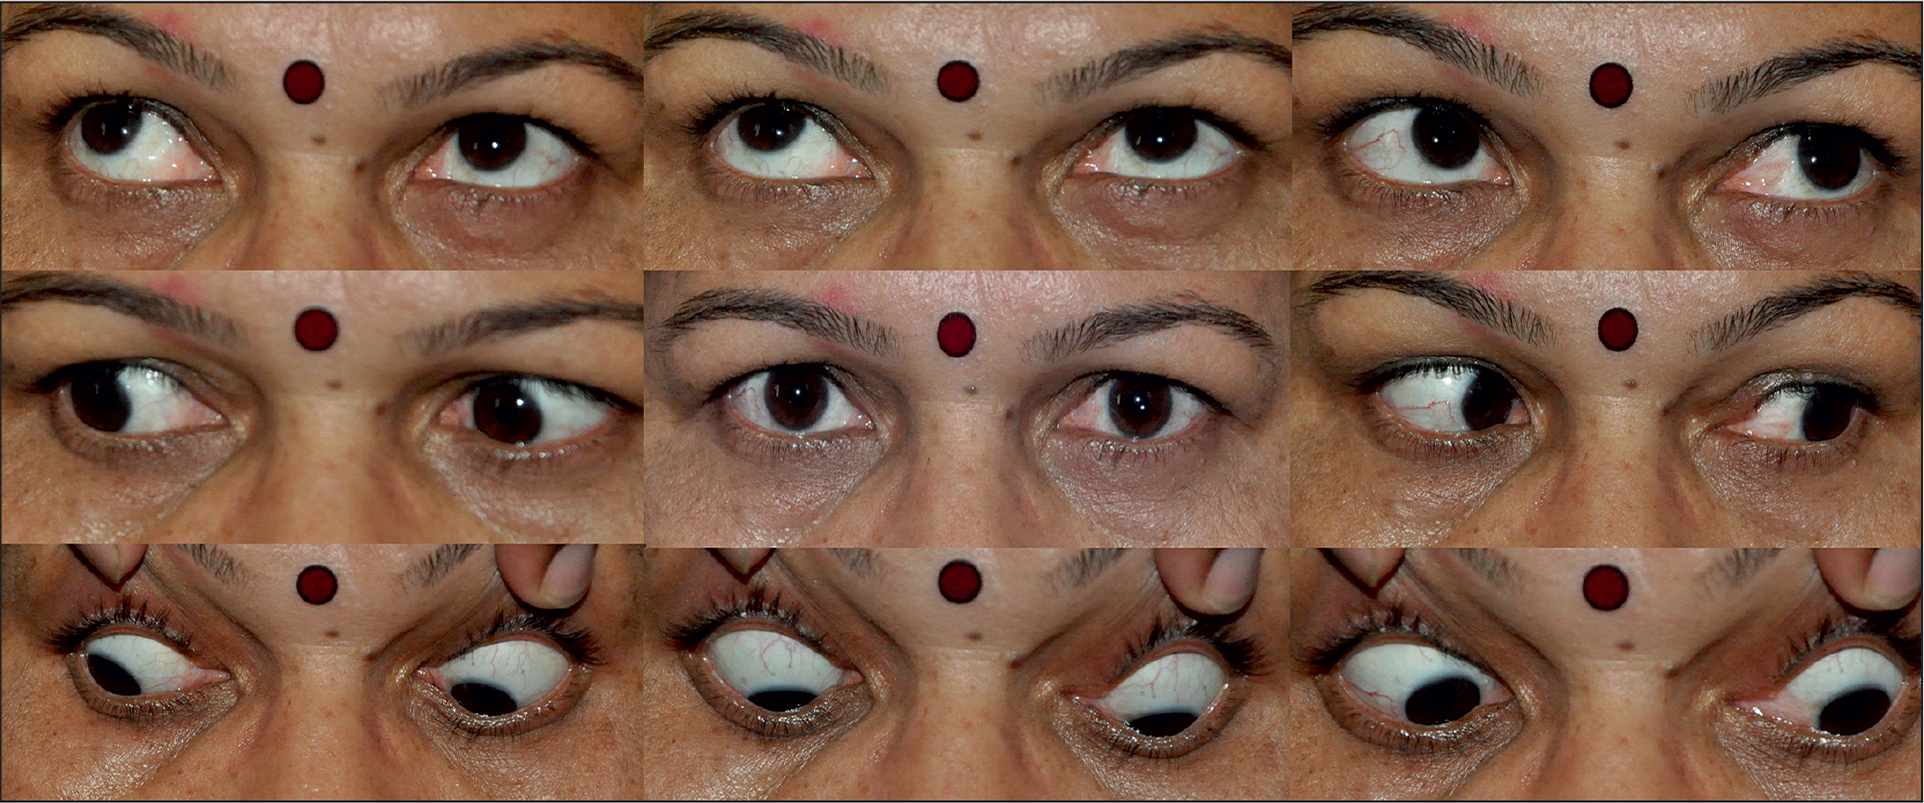 Postoperative nine-gaze photograph shows the patient was orthotropic with improvement in adduction at 6 months.